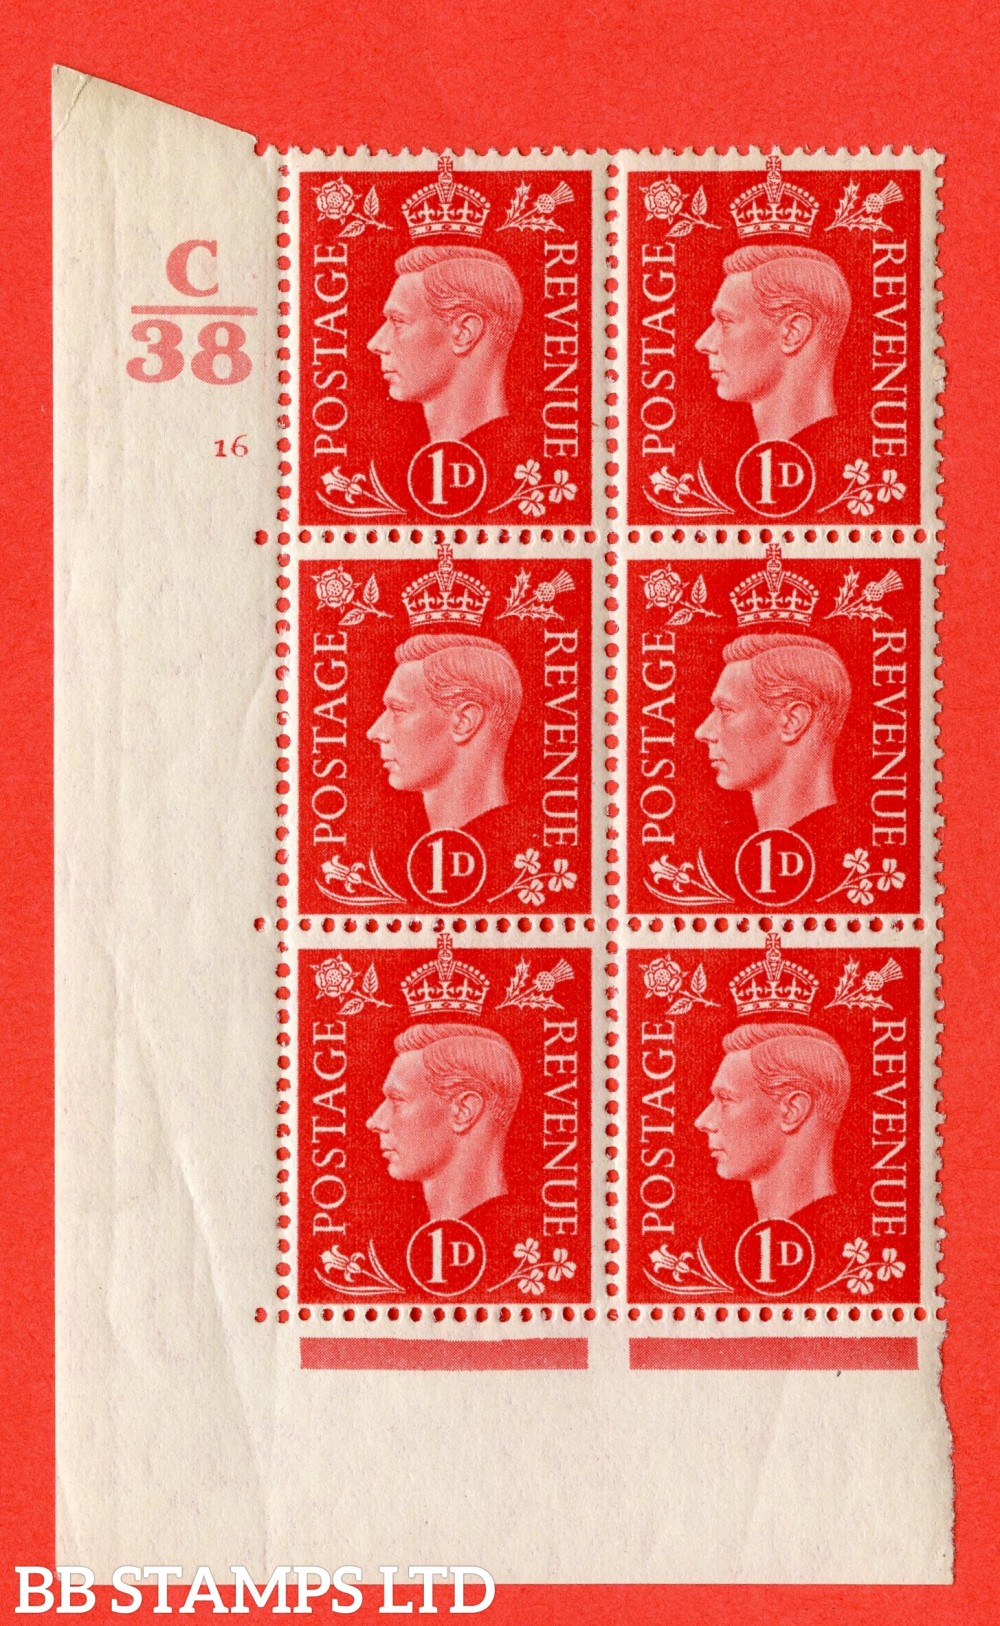 "SG. 463. Q4. 1d Scarlet. A superb UNMOUNTED MINT "" Control C38 cylinder 16 no dot "" block of 6 with perf type 5 E/I with marginal rule."